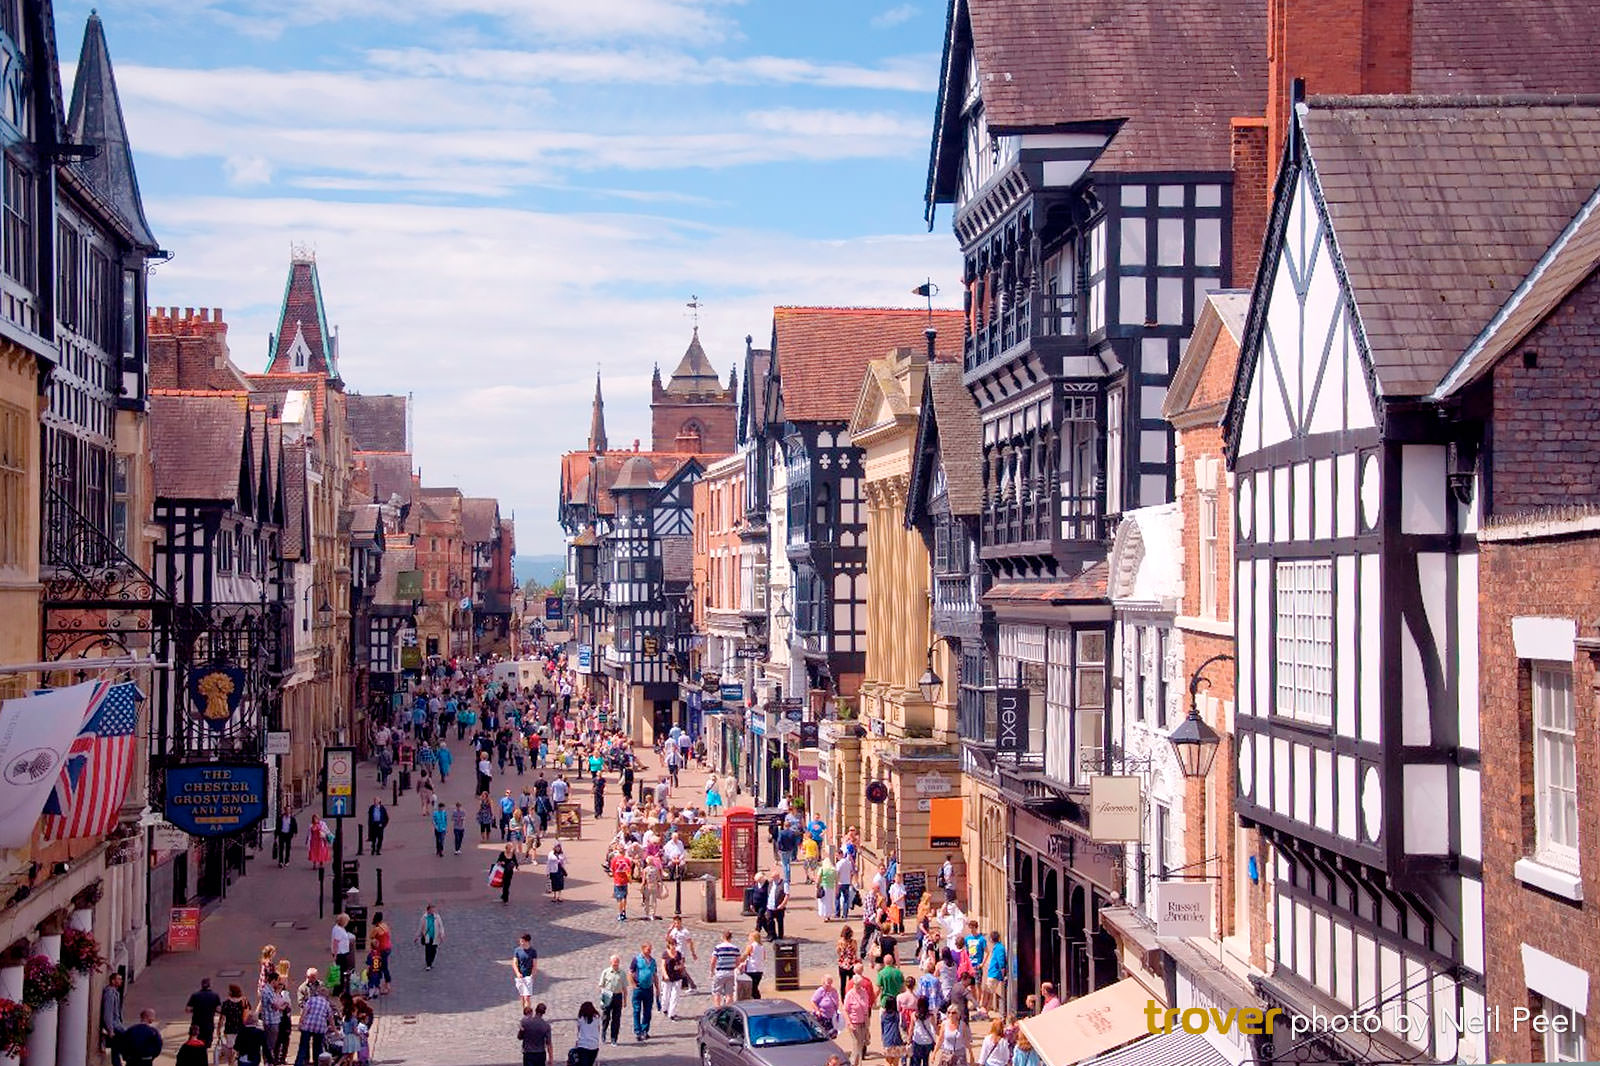 10 Best Things to Do in Chester - What is Chester Famous For?